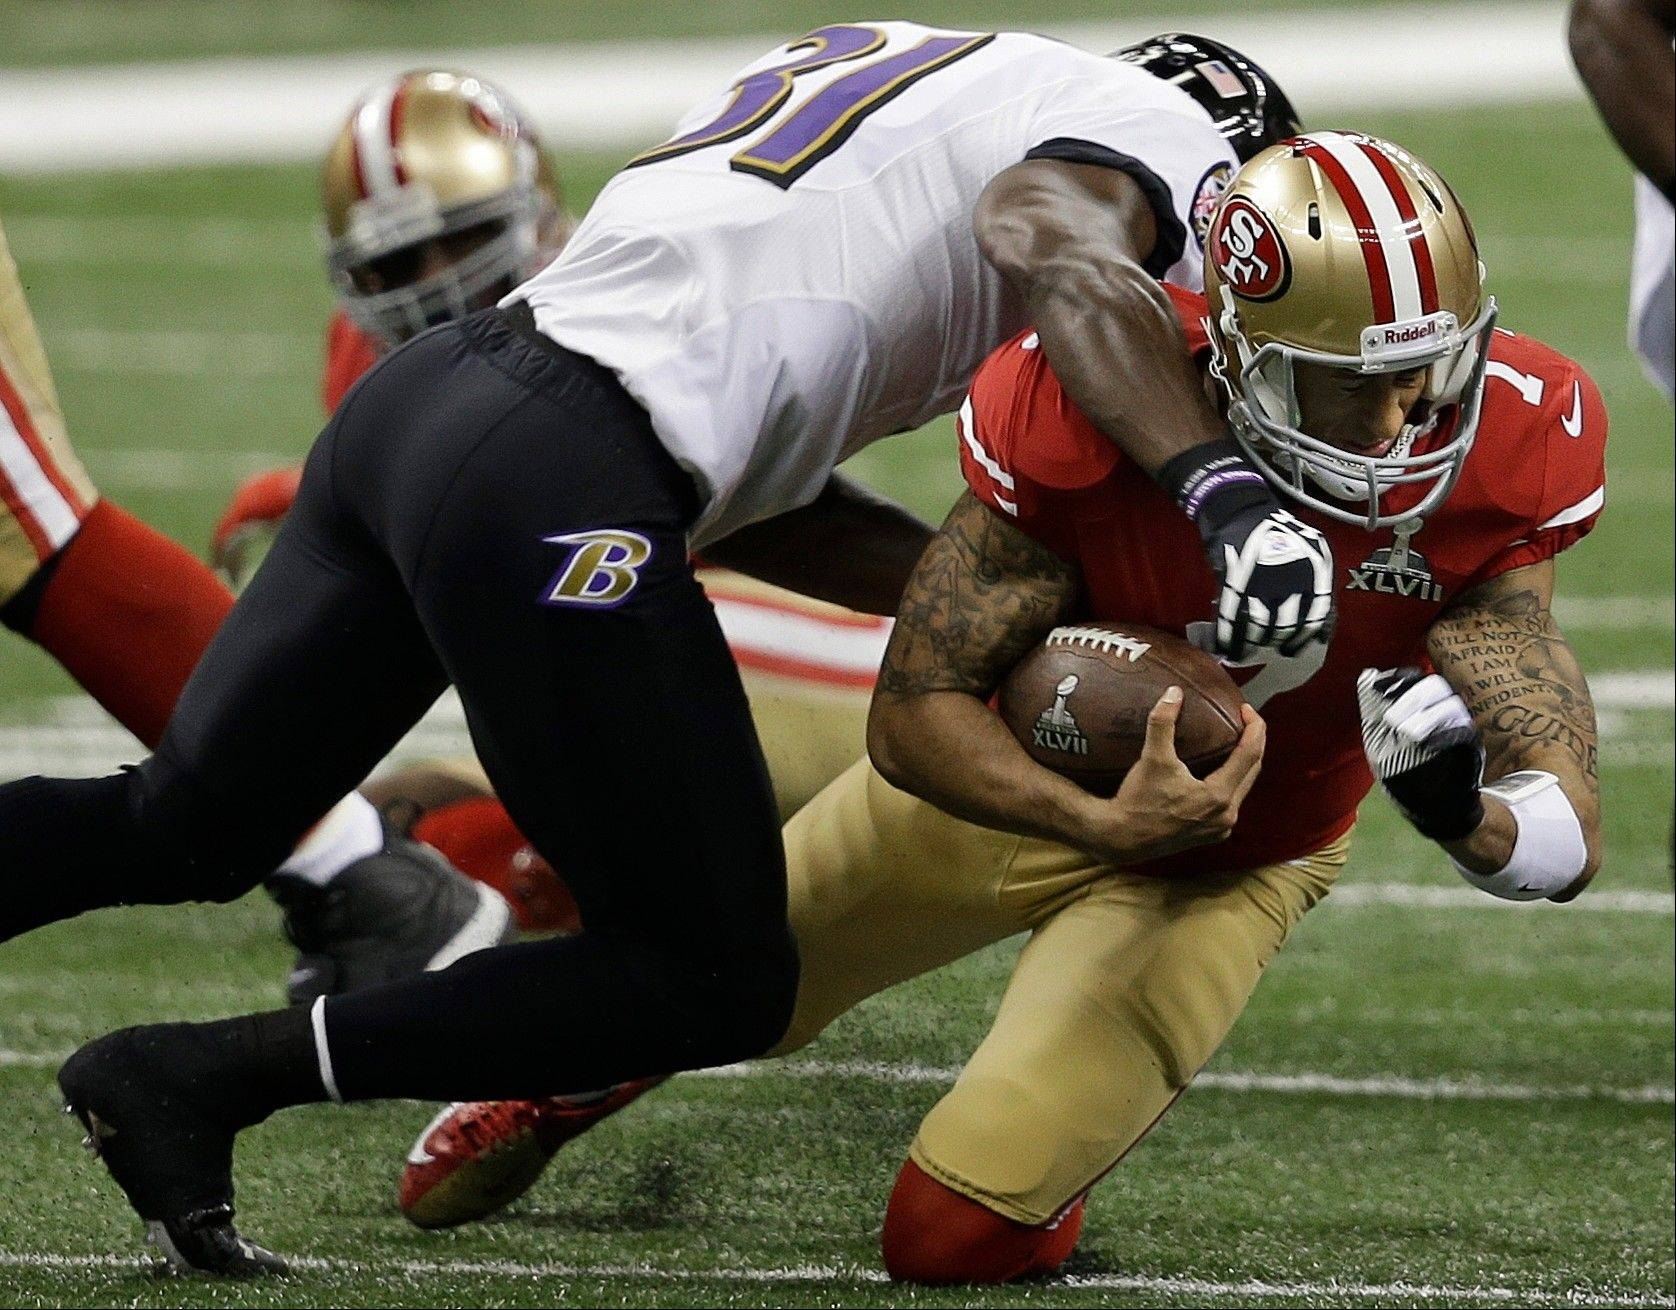 San Francisco 49ers quarterback Colin Kaepernick (7) is tackled by Baltimore Ravens safety Bernard Pollard (31) during the first half.